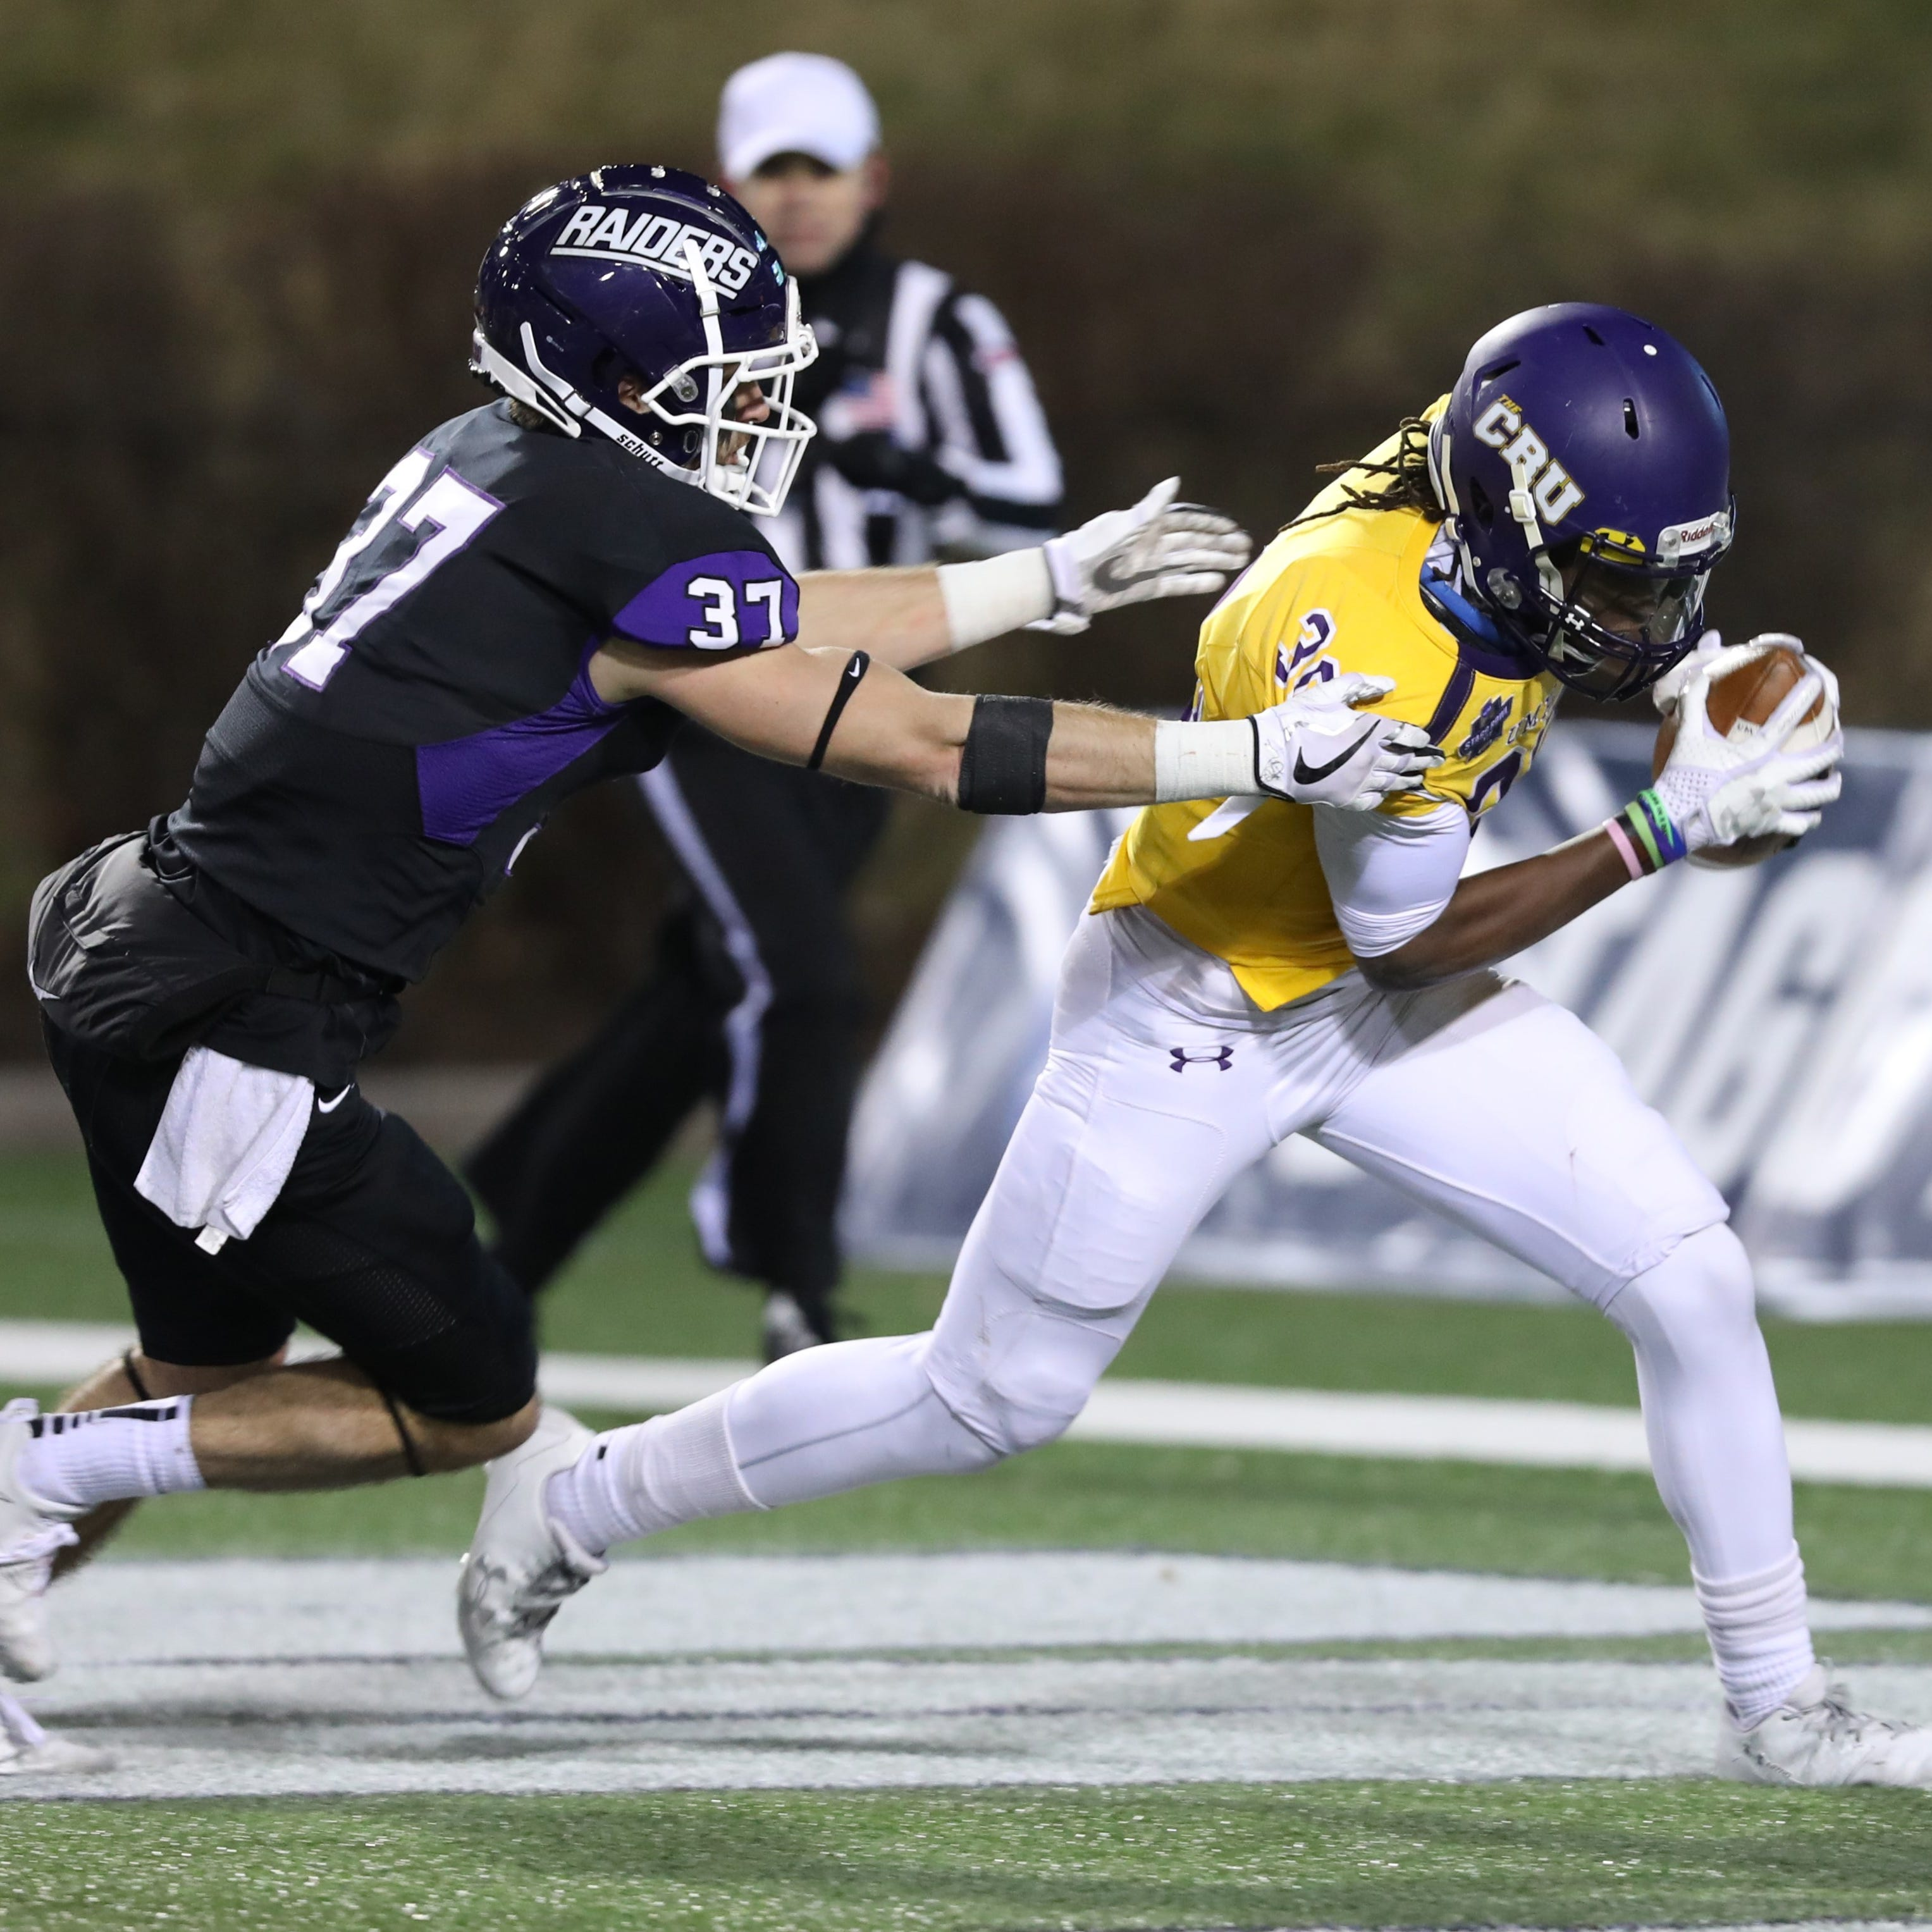 County football players at Mount Union, Ferris to play for NCAA titles